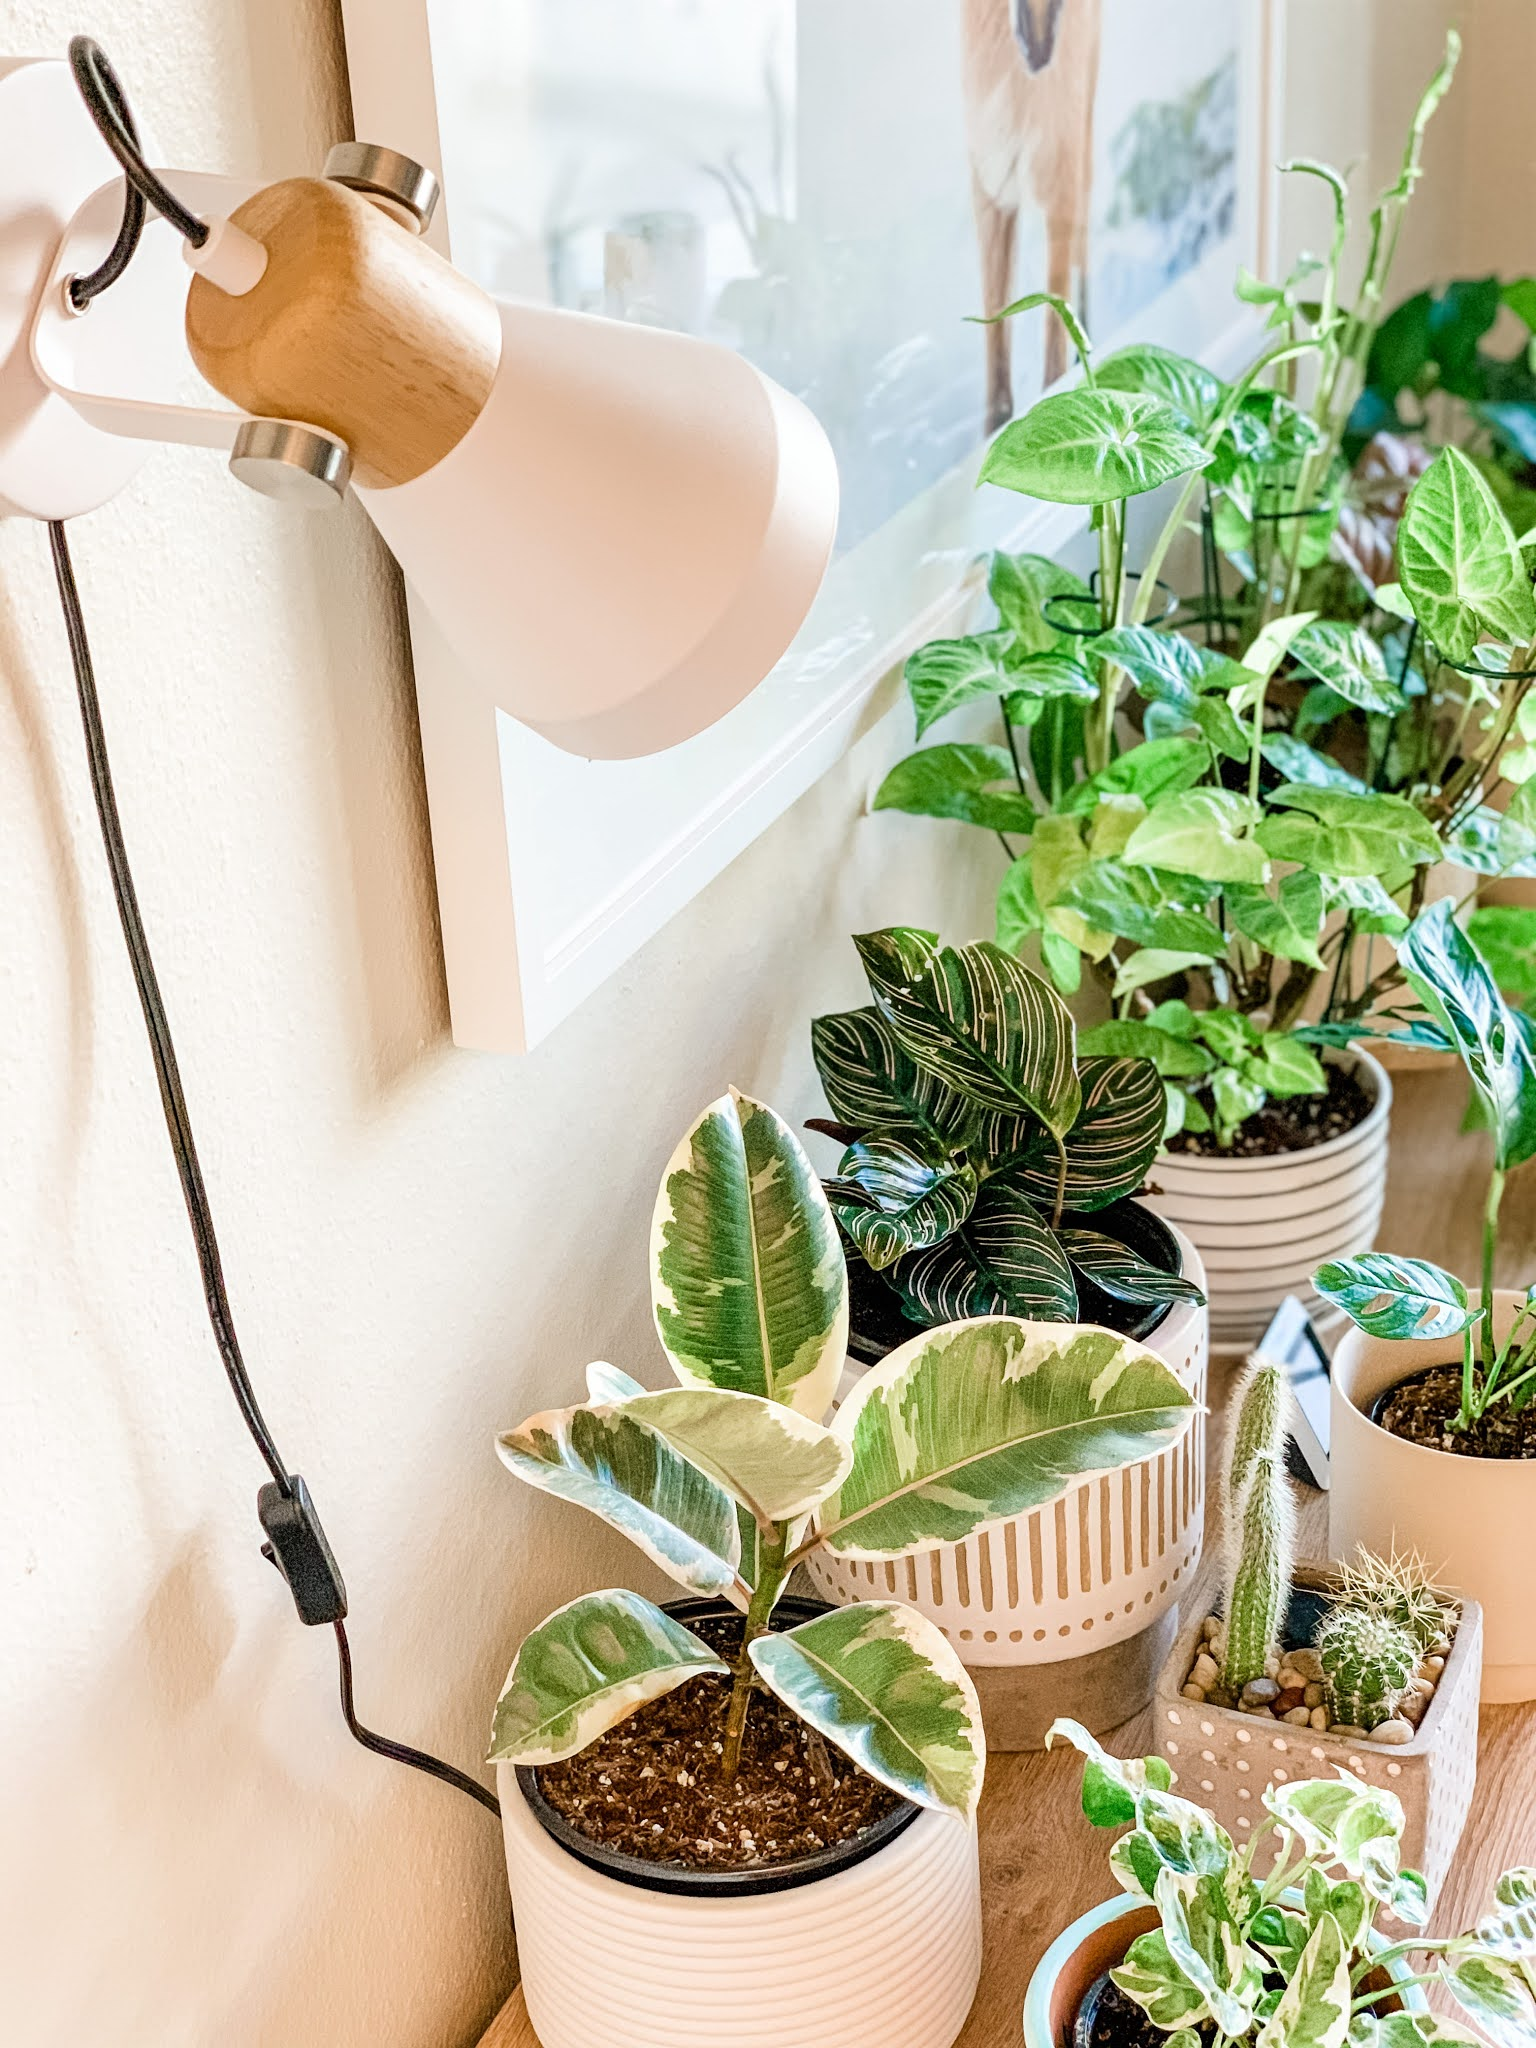 Houseplants on a table and a white indoor grow light